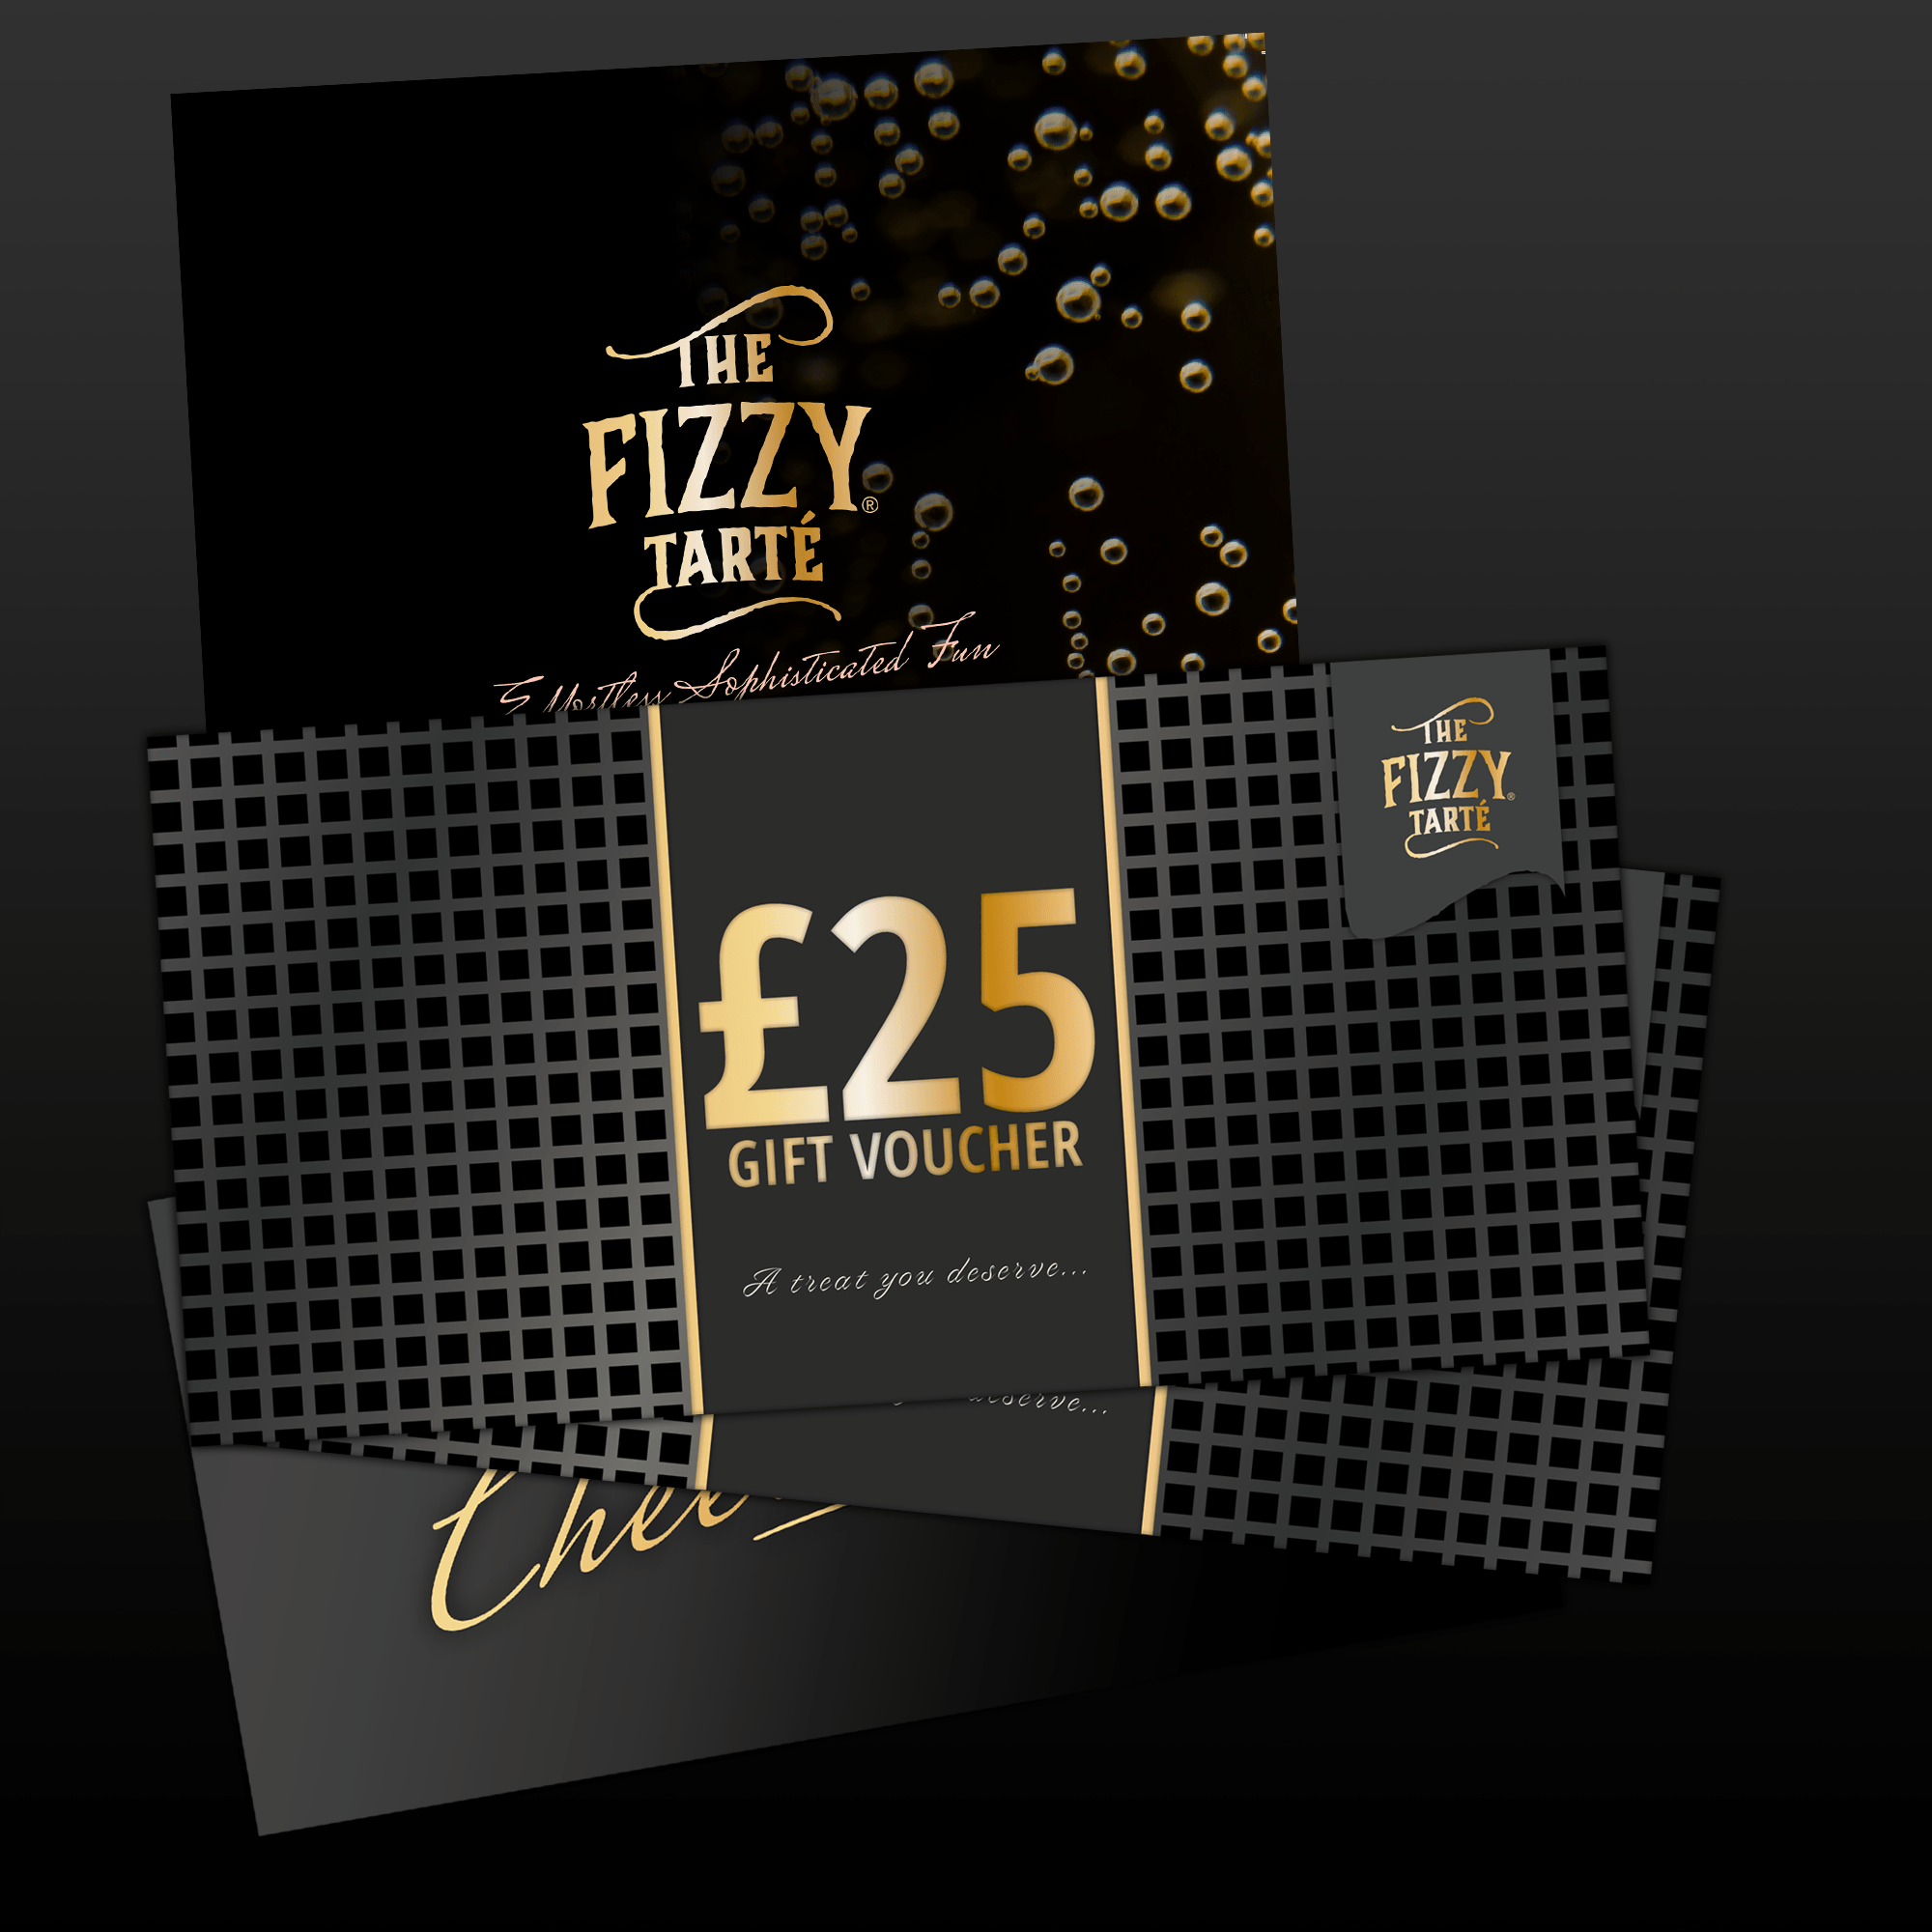 Gift Vouchers are available both online and at the Fizzy Tarte